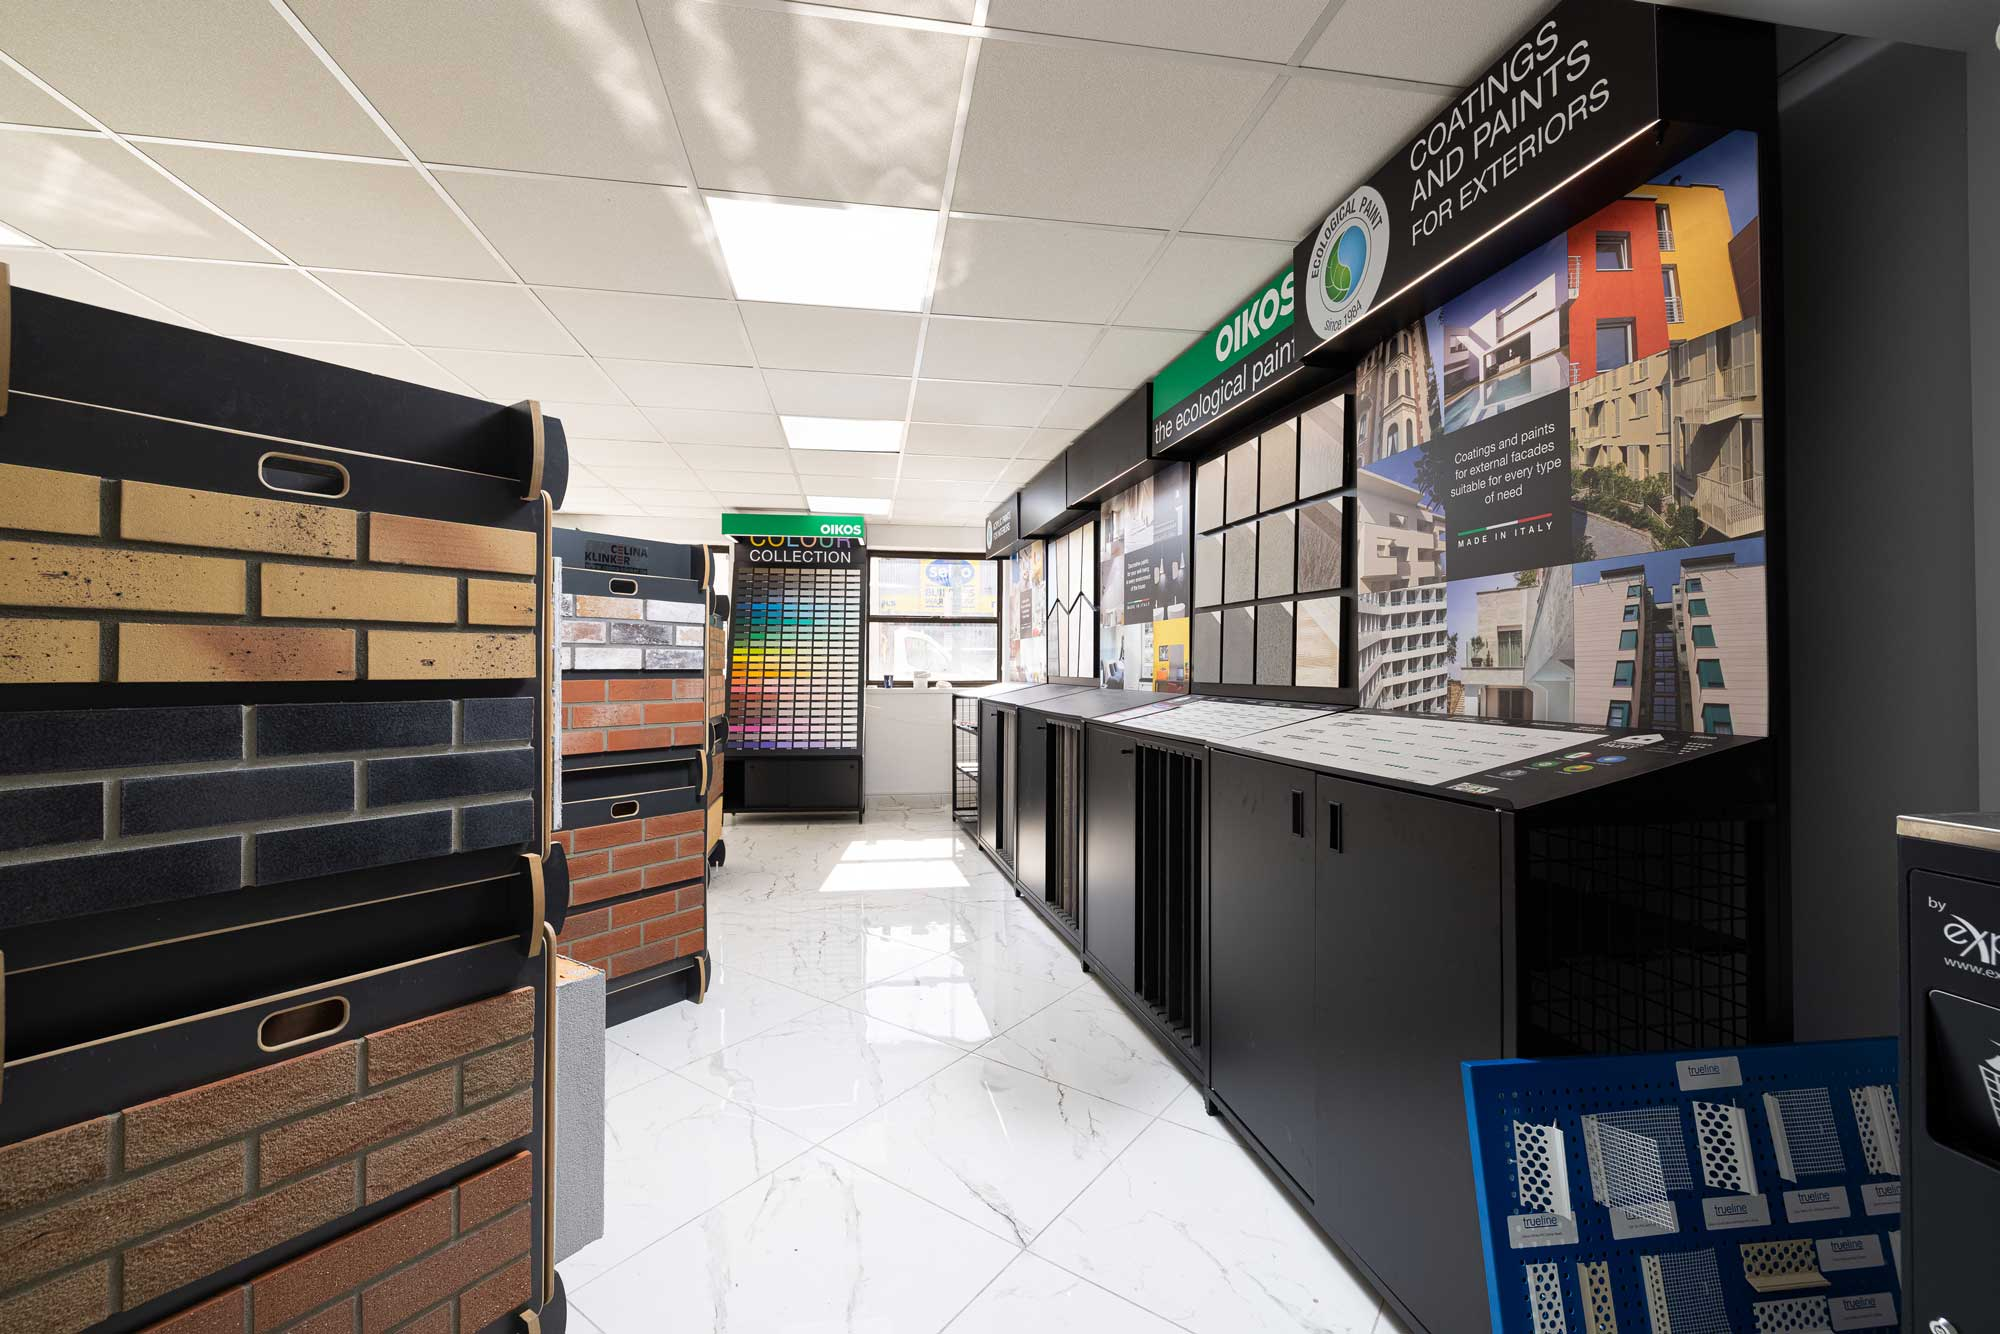 London Southgate showroom and warehouse stocking materials for rendering, external wall insulation, waterproofing, concrete repair, paints, plasters, brick slips, italian porcelain tiles.